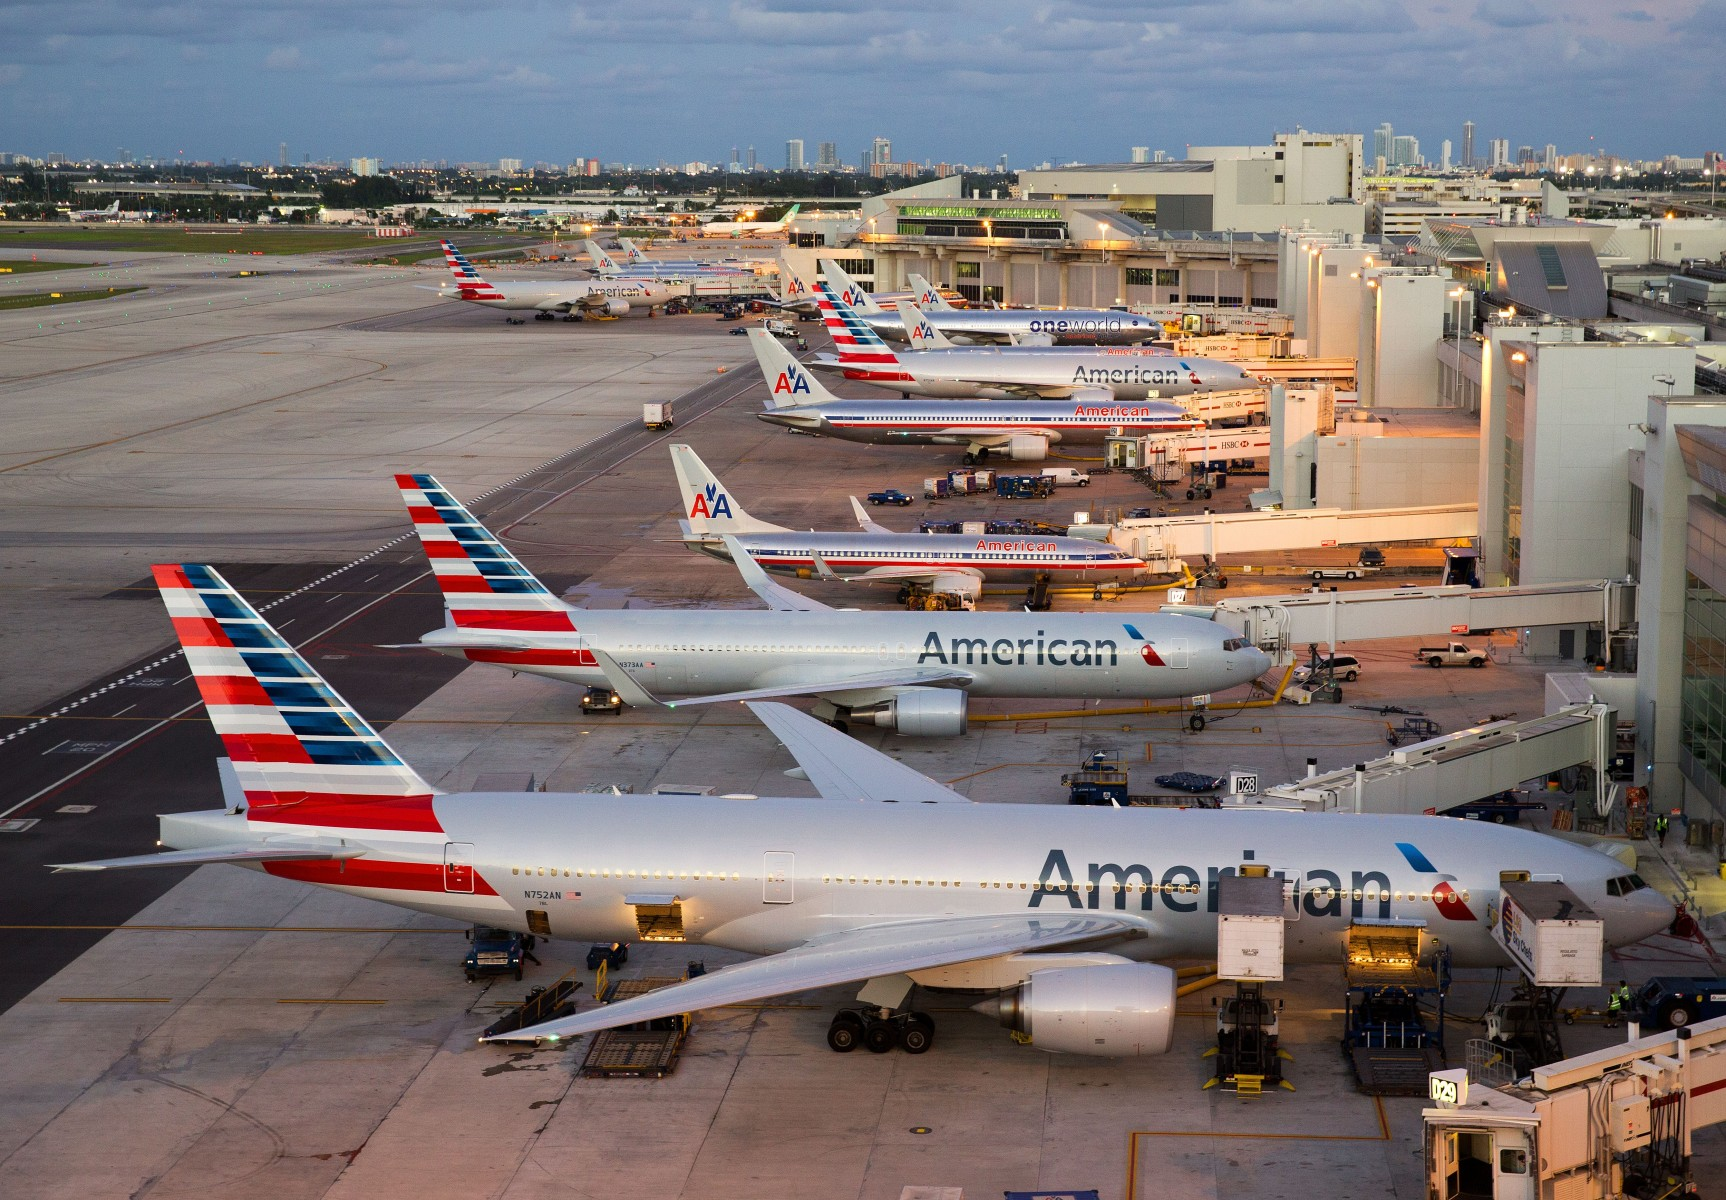 American Airlines announces expanded service from MIA hub